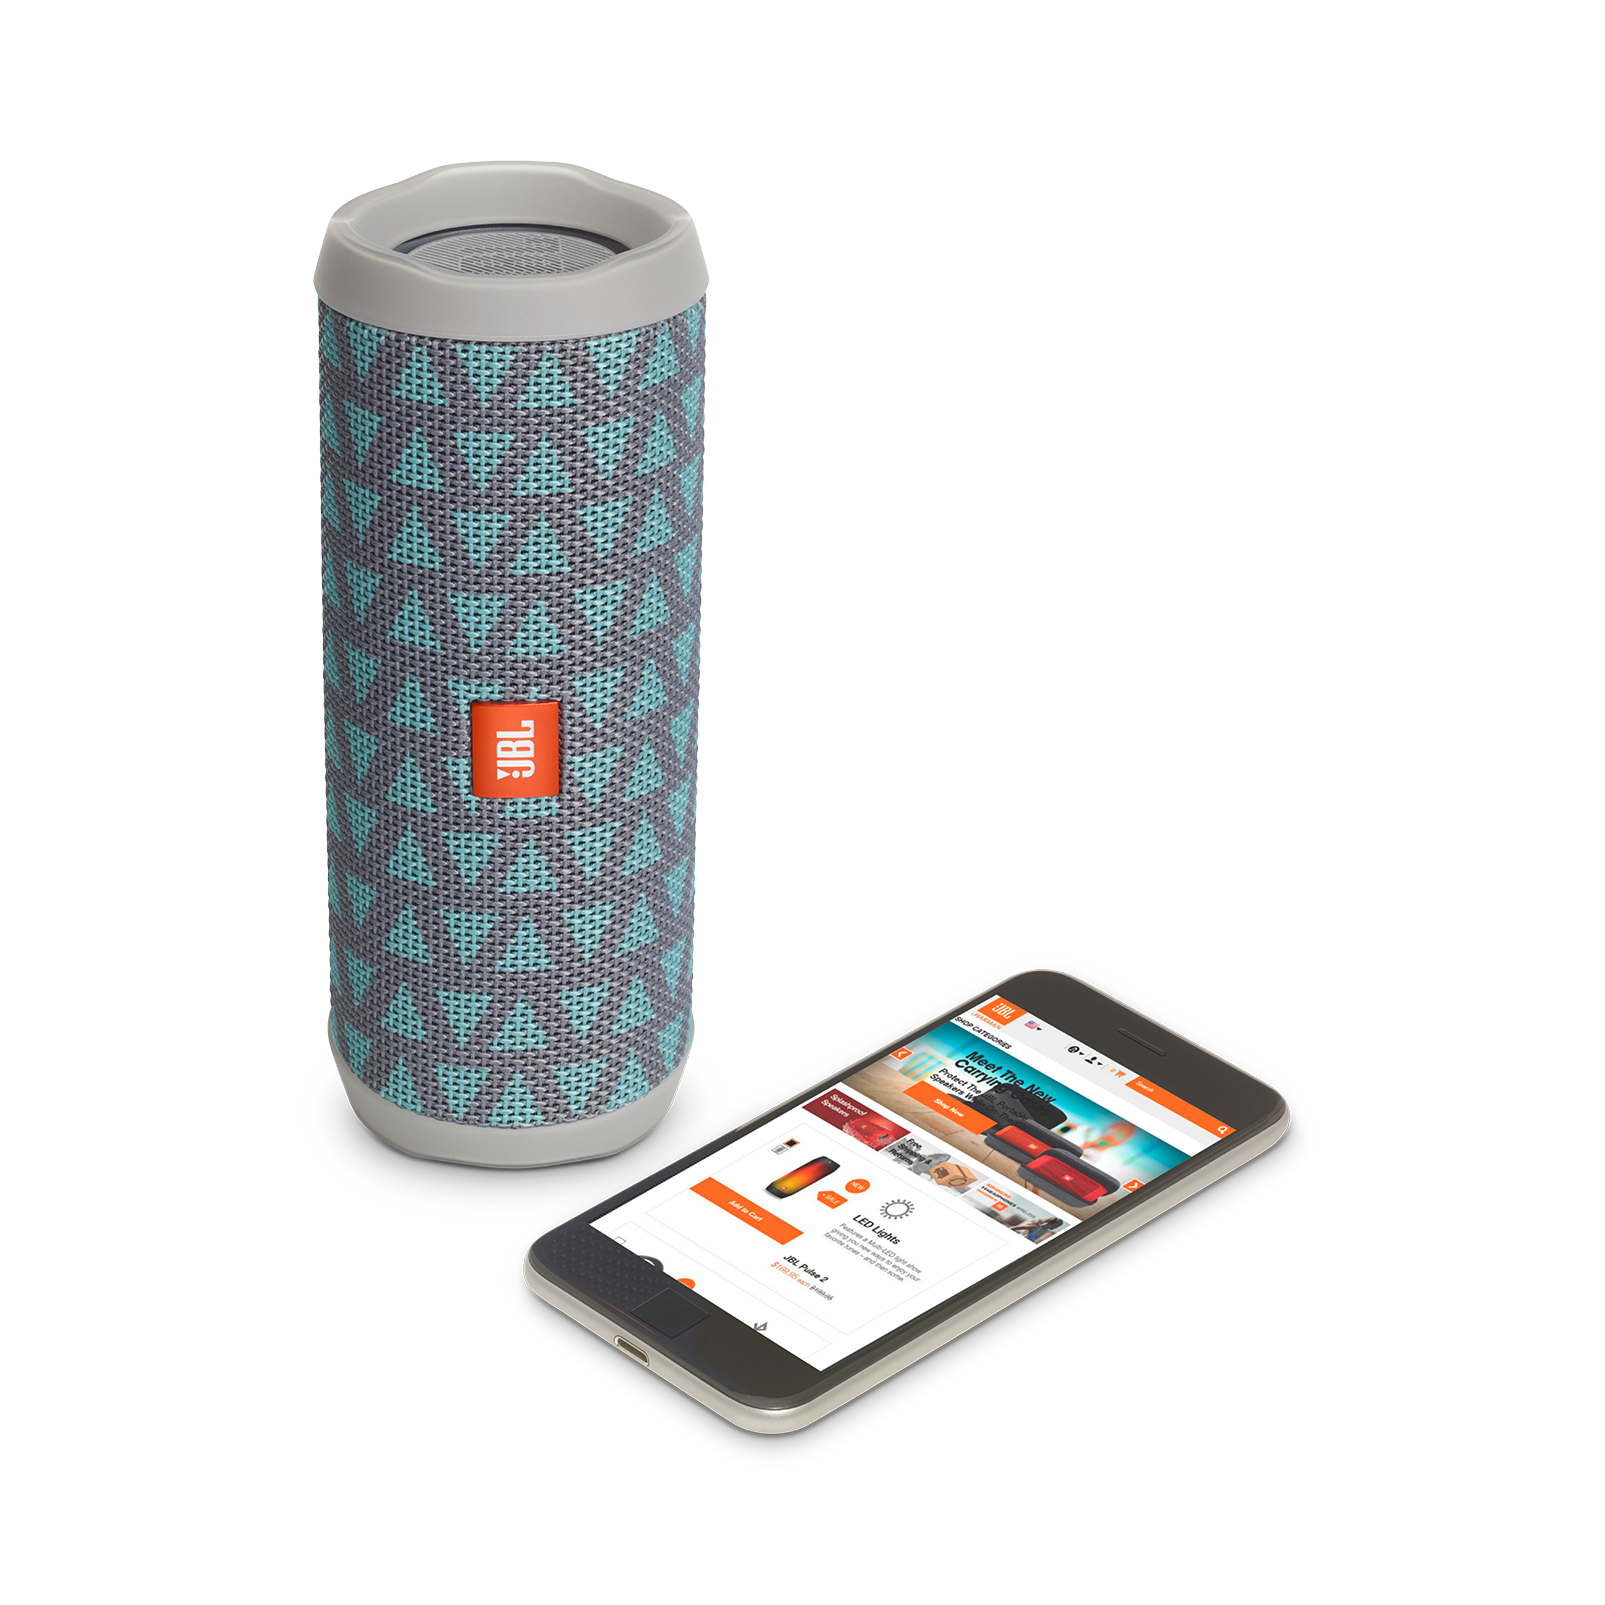 JBL Flip 4 Special Edition - Trio - A full-featured waterproof portable Bluetooth speaker with surprisingly powerful sound. - Detailshot 2